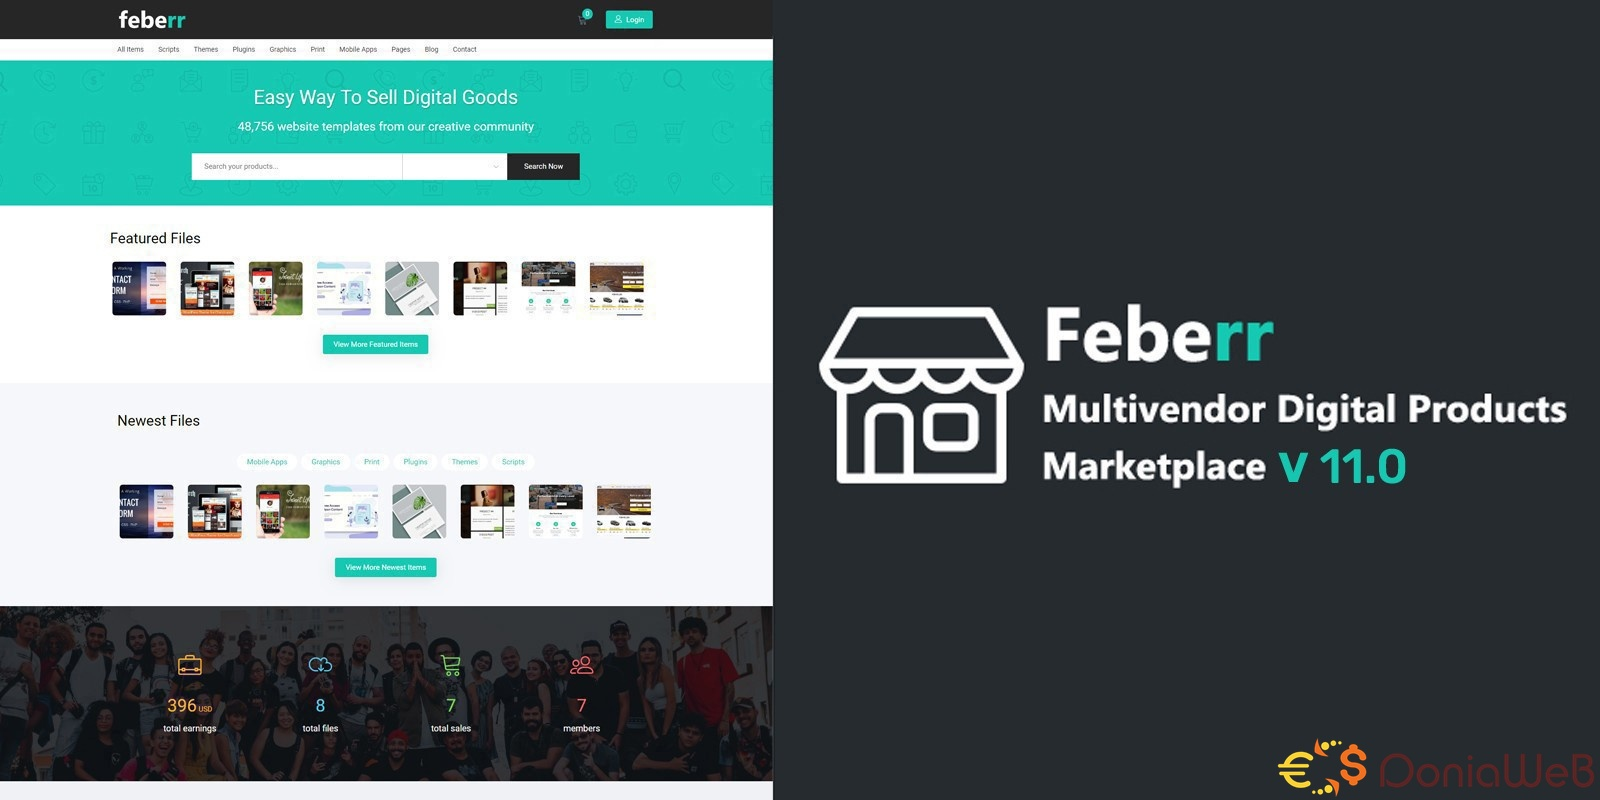 Feberr v11.0 - Multivendor Digital Products Marketplace